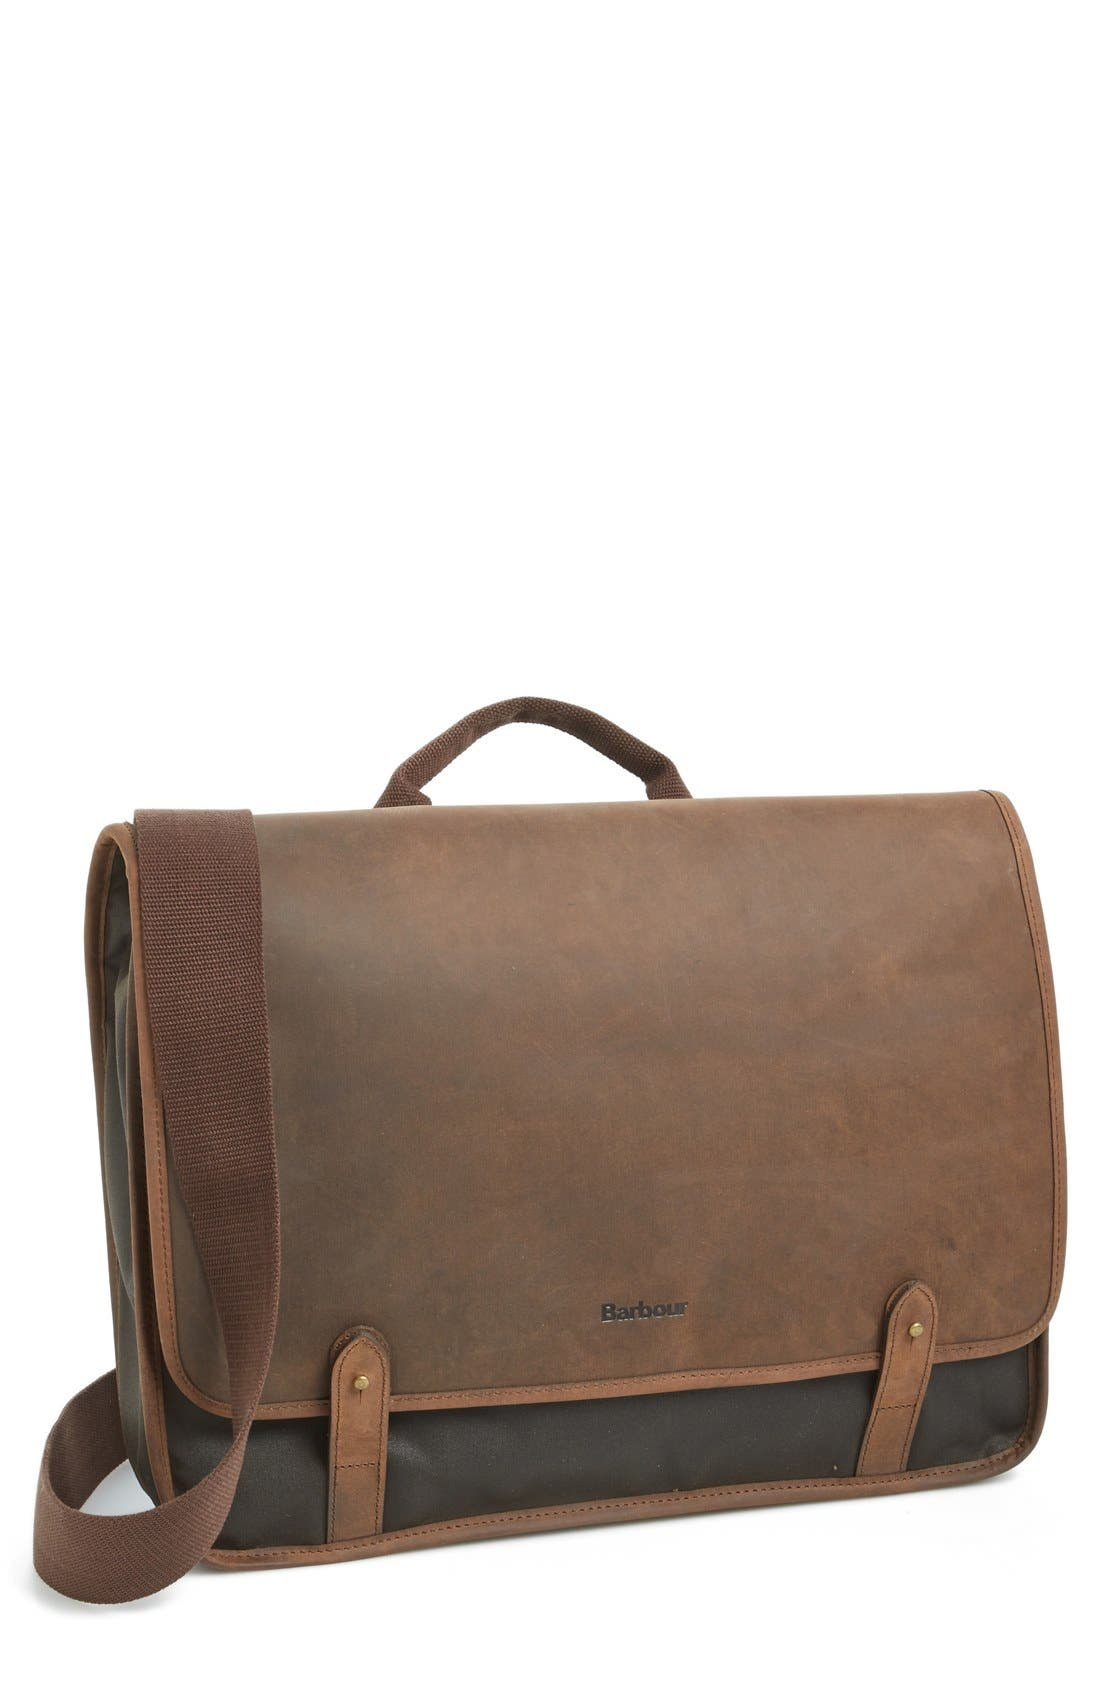 BARBOUR Waxed Canvas & Leather Messenger Bag, Main, color, 340